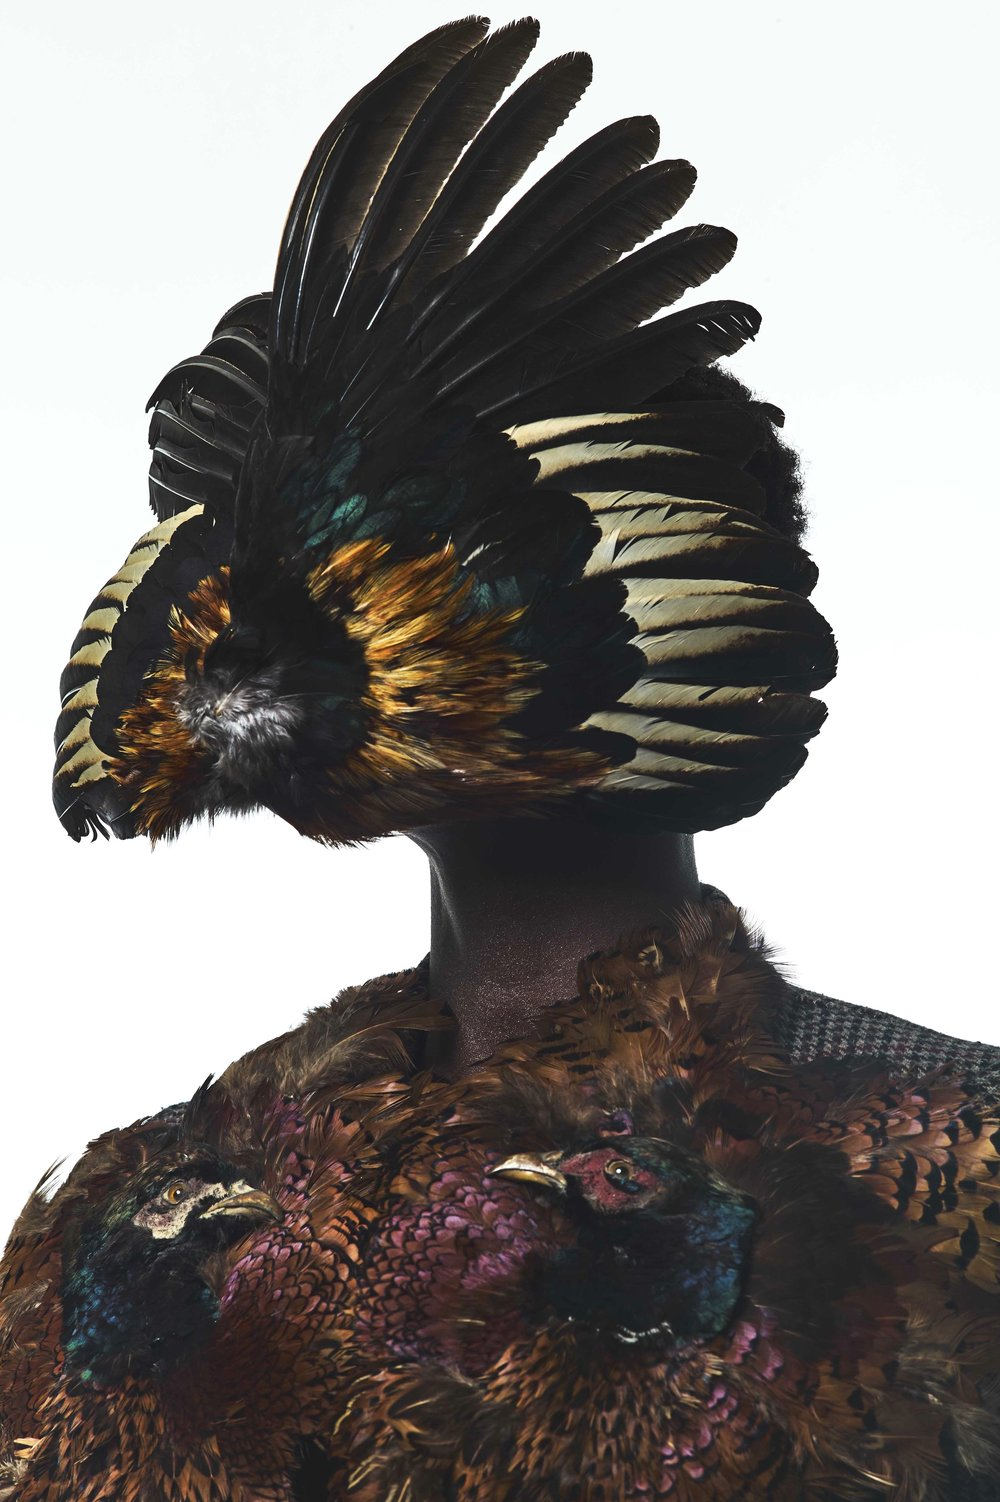 Figure 5. 'The Peacock Effect', The Peacock Effect Exhibition, Leica Gallery Los Angeles Jan 2018